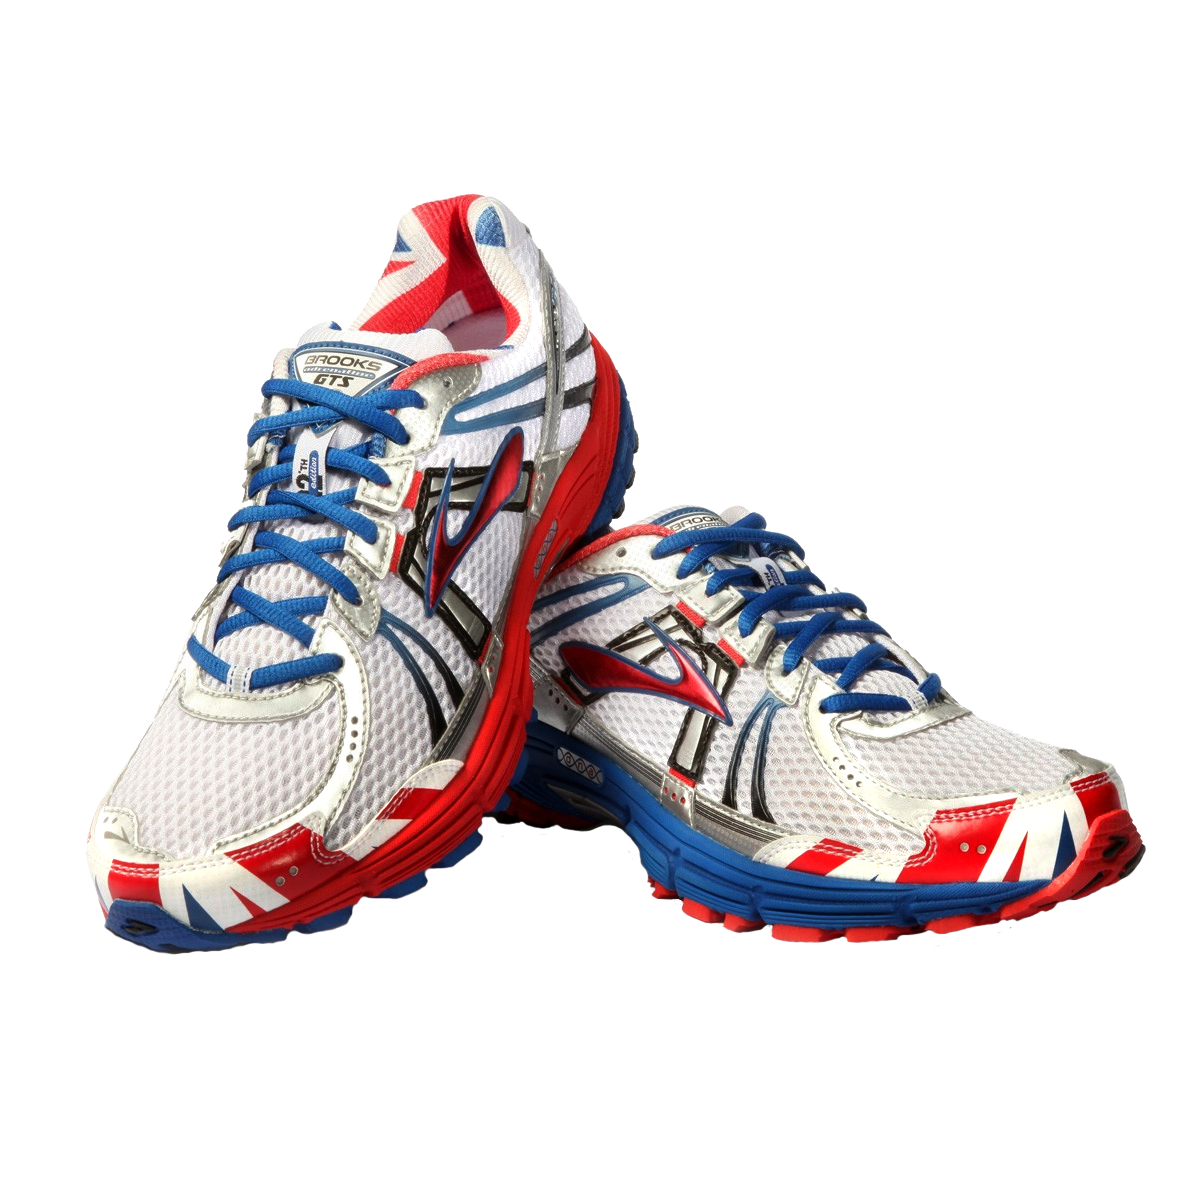 Sports Shoes Png (+).